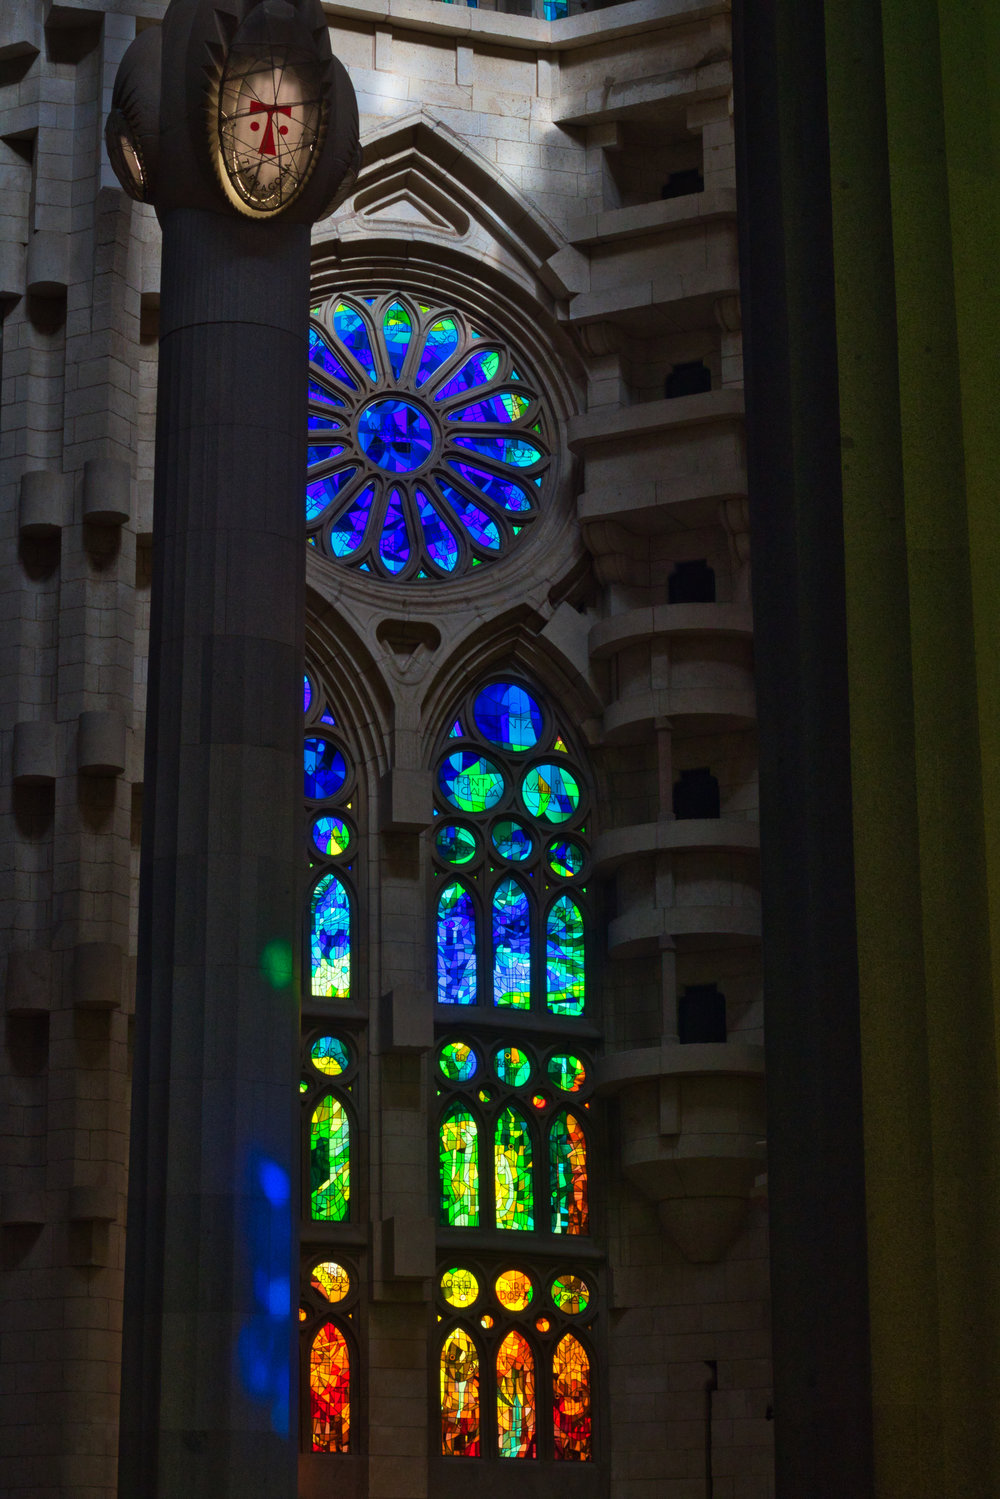 The 45-minute audio guide only scratched the surface of the vast detail and symbolism entombed in within Sagrada Família's walls.   Photo: Courtany Schick